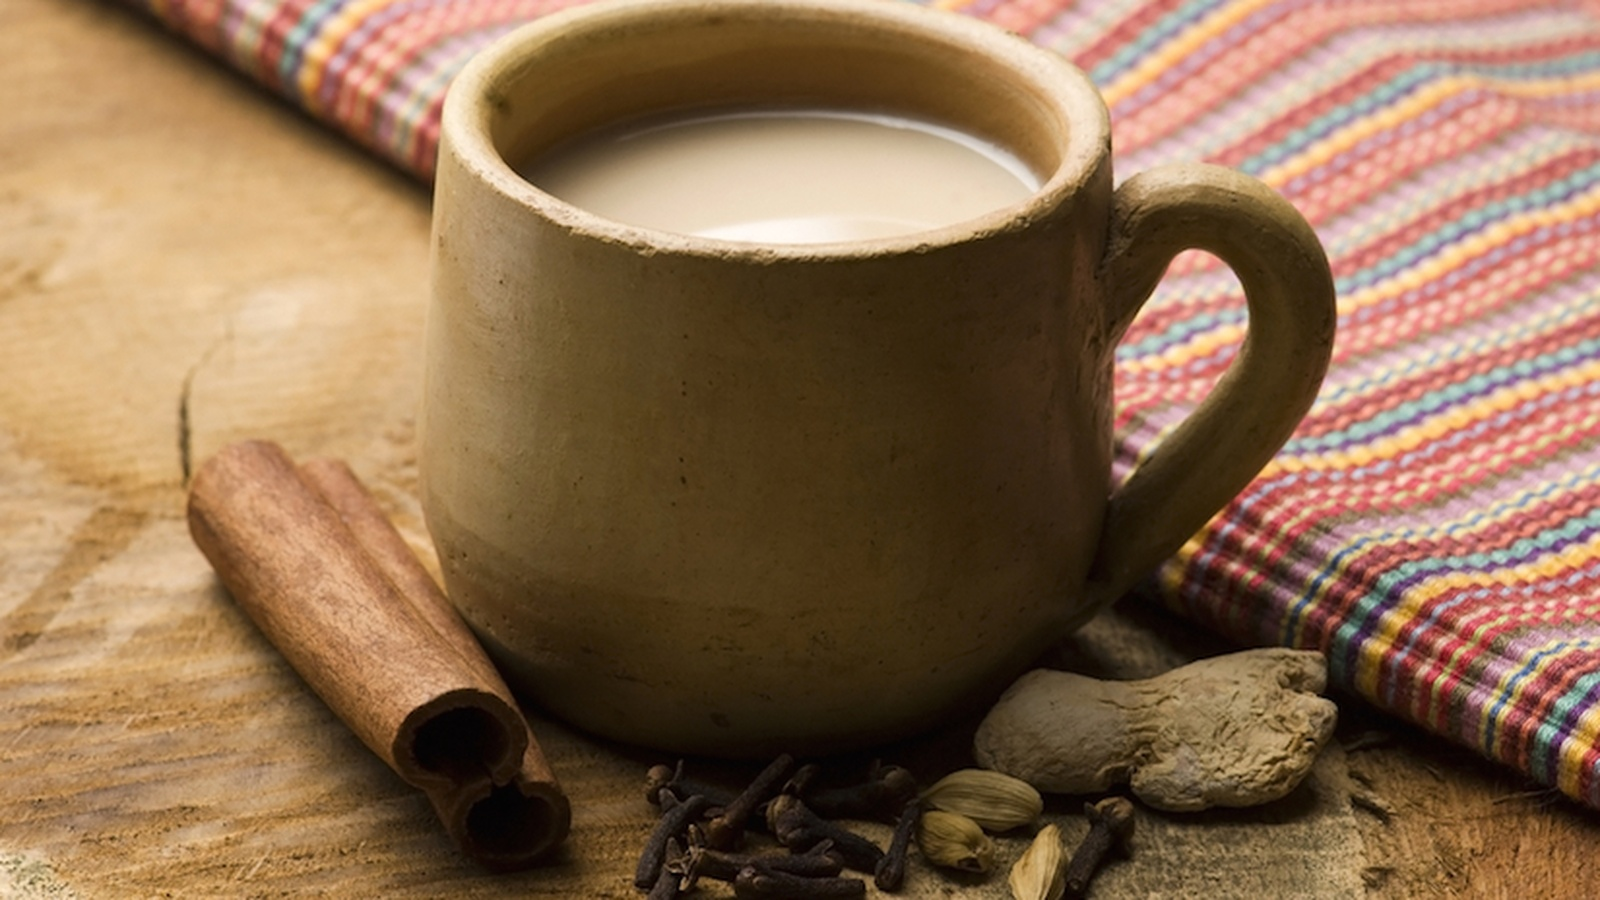 How To Make a Warming Chai